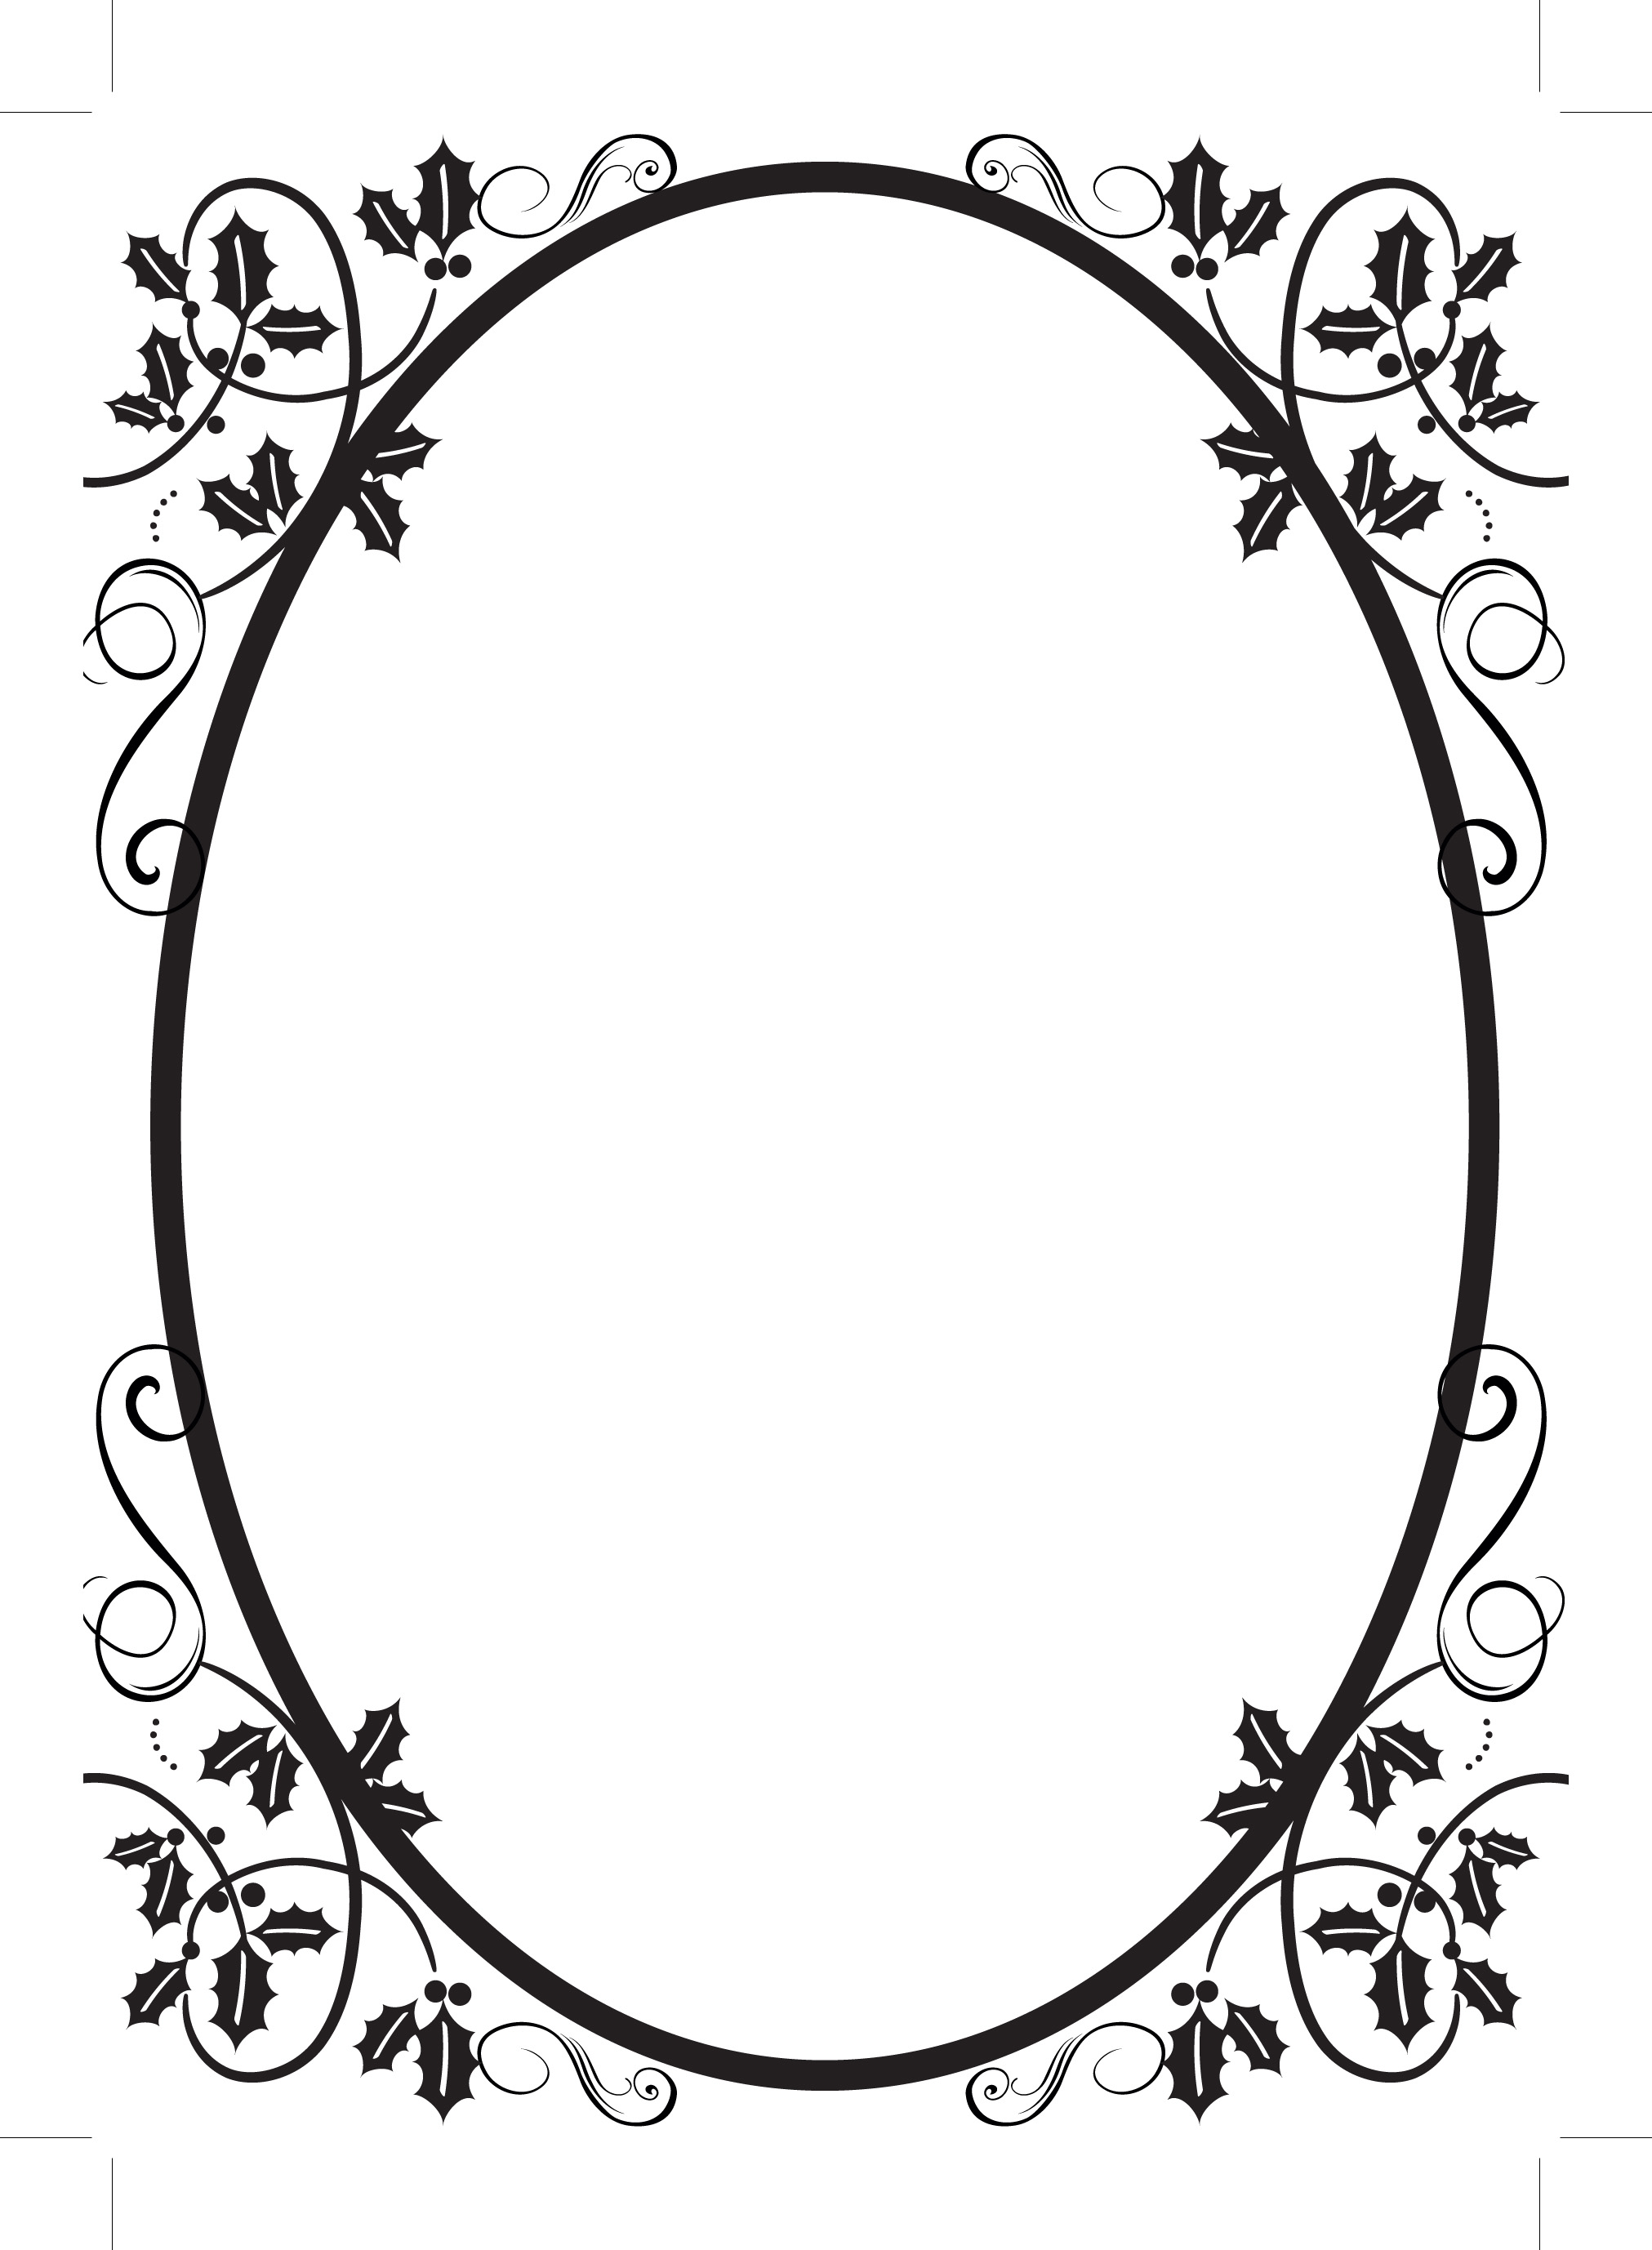 2023x2755 C Clipart Borders Related 28 28